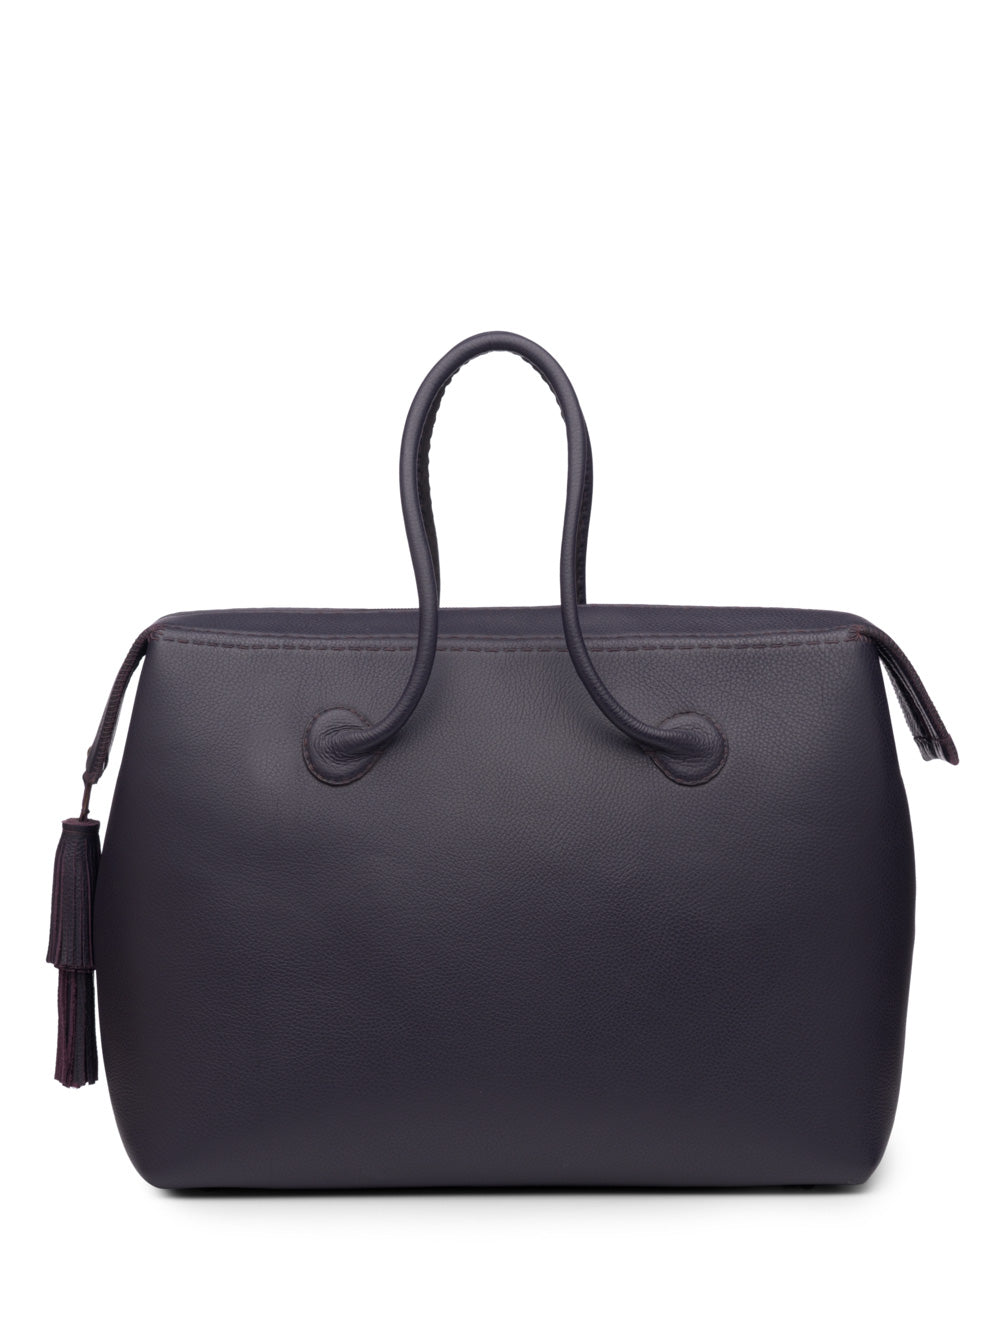 Classic Violet Weekend Bag